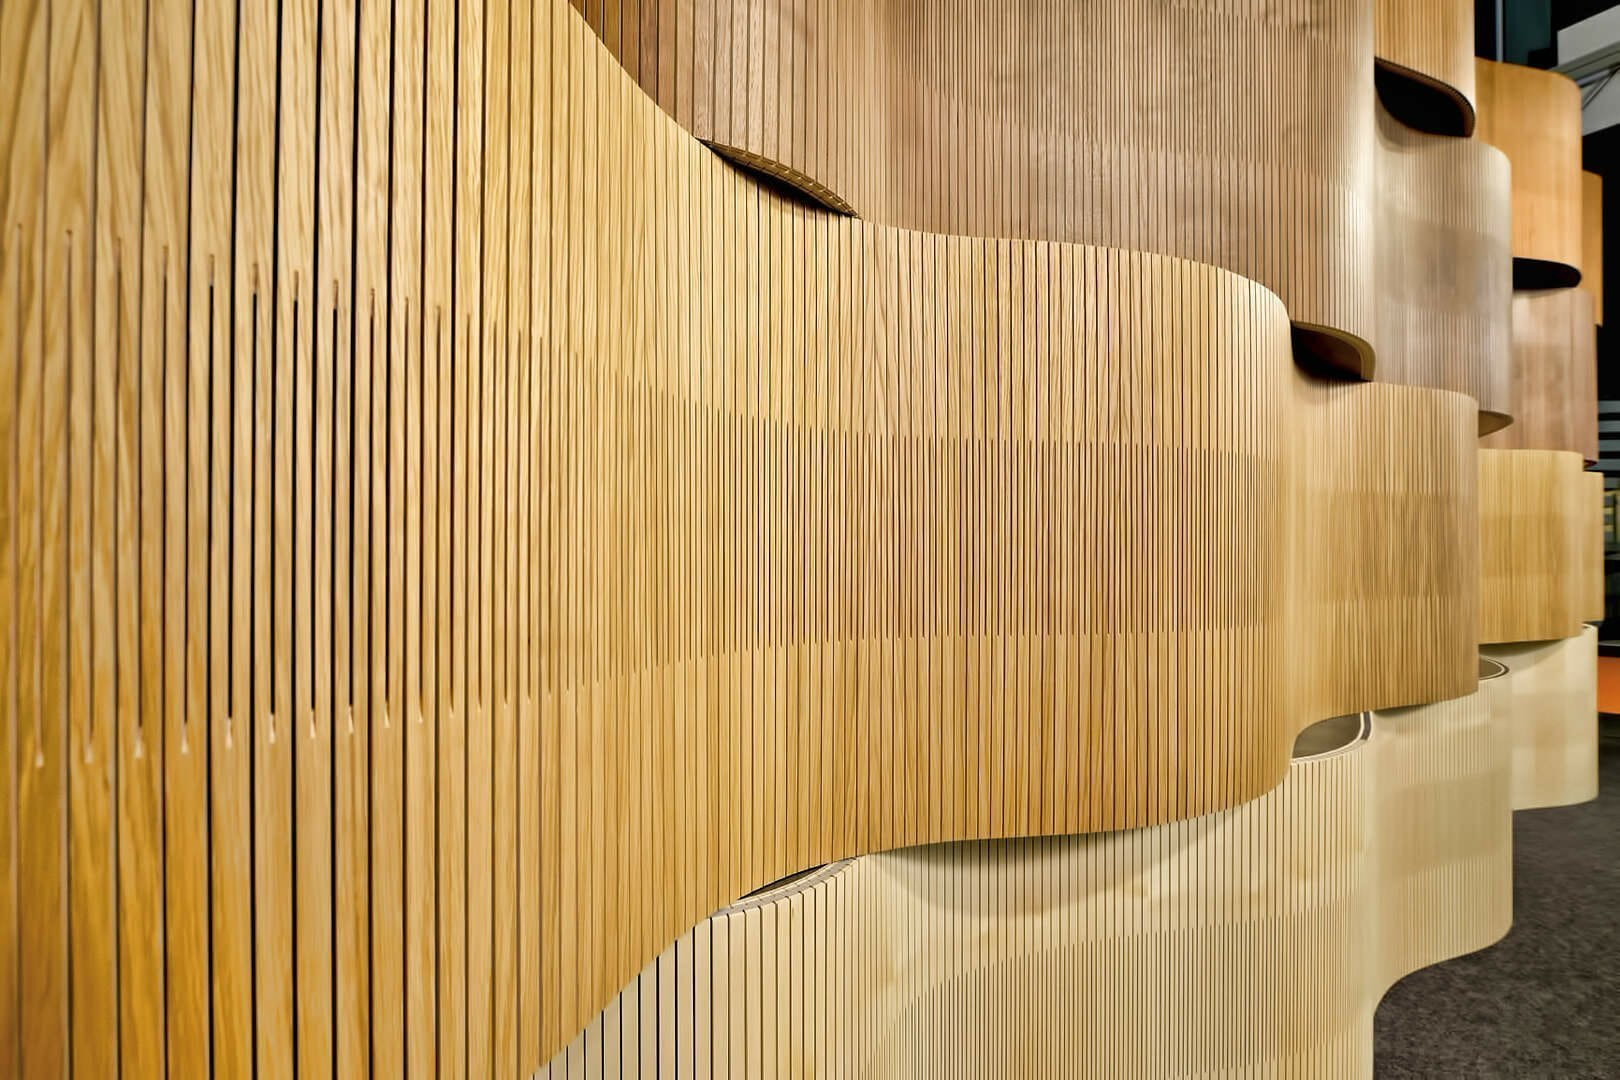 curve-wall-wood-imm-03